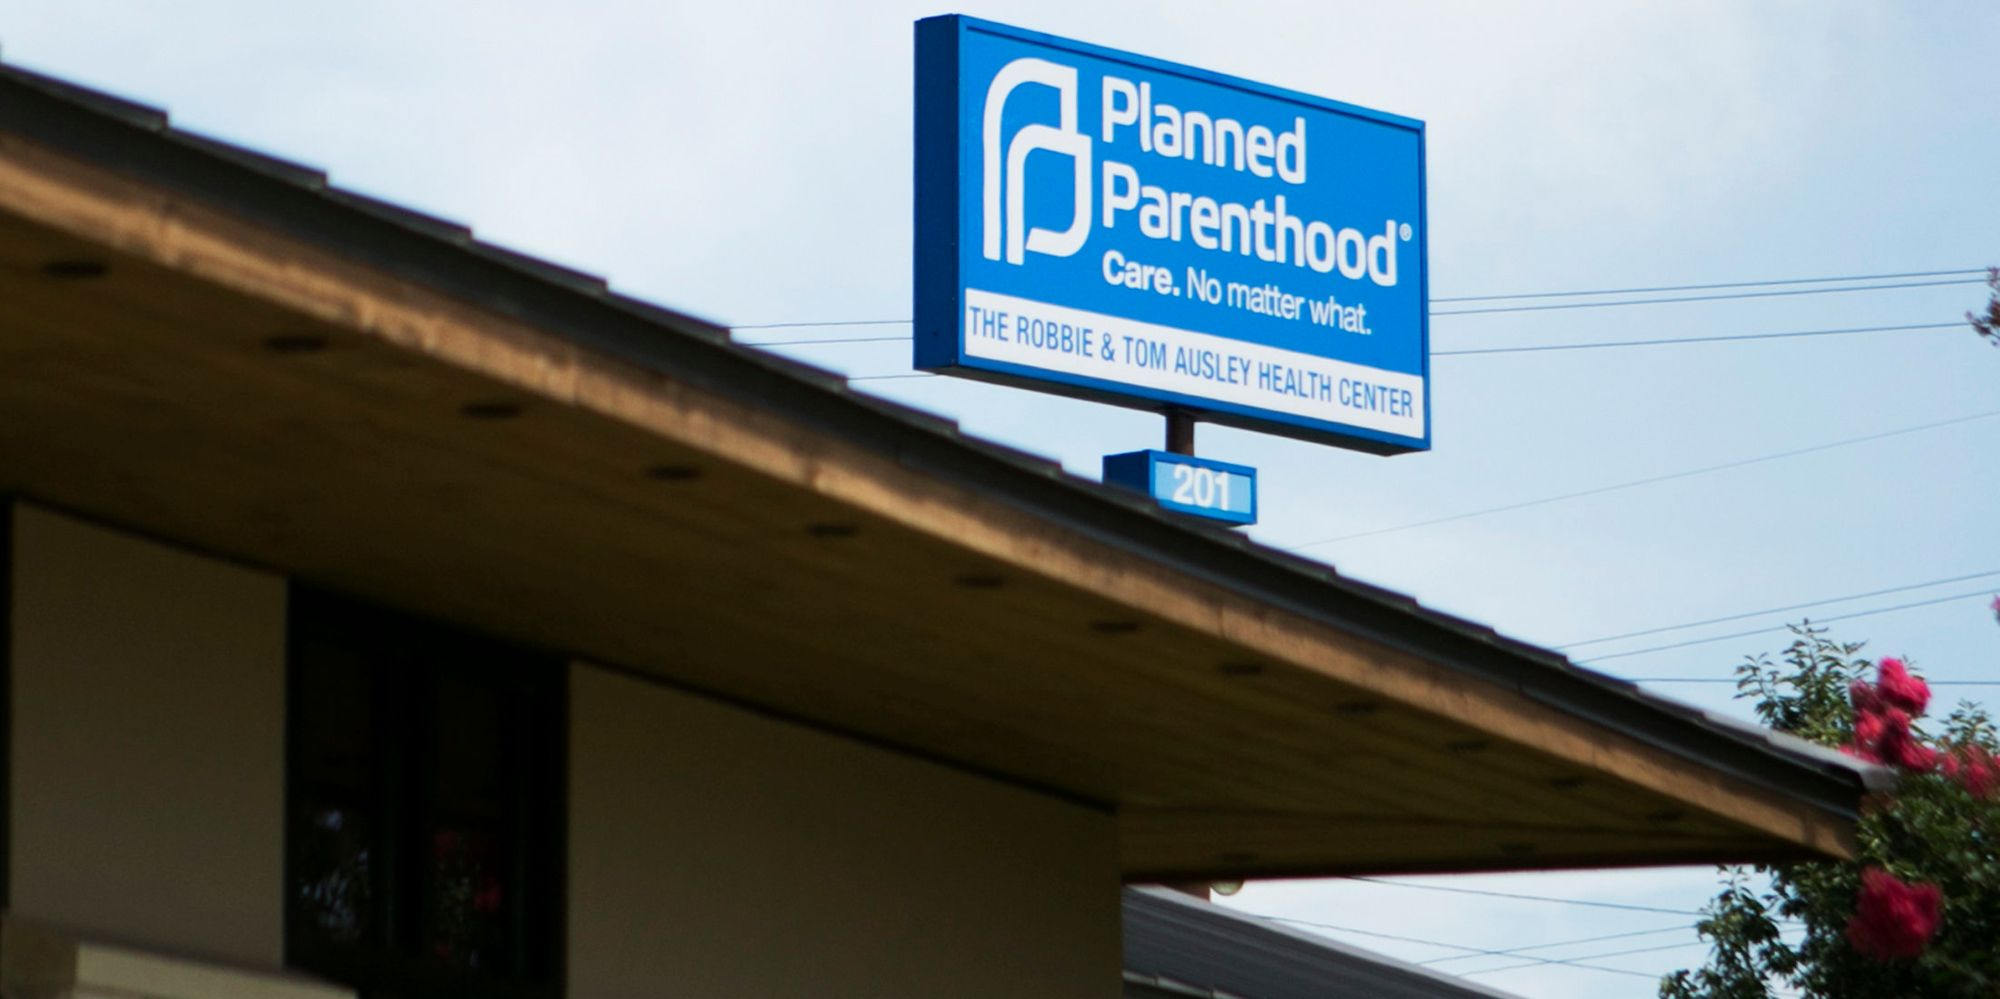 Texas Moves To Block Medicaid Funding For Planned Parenthood